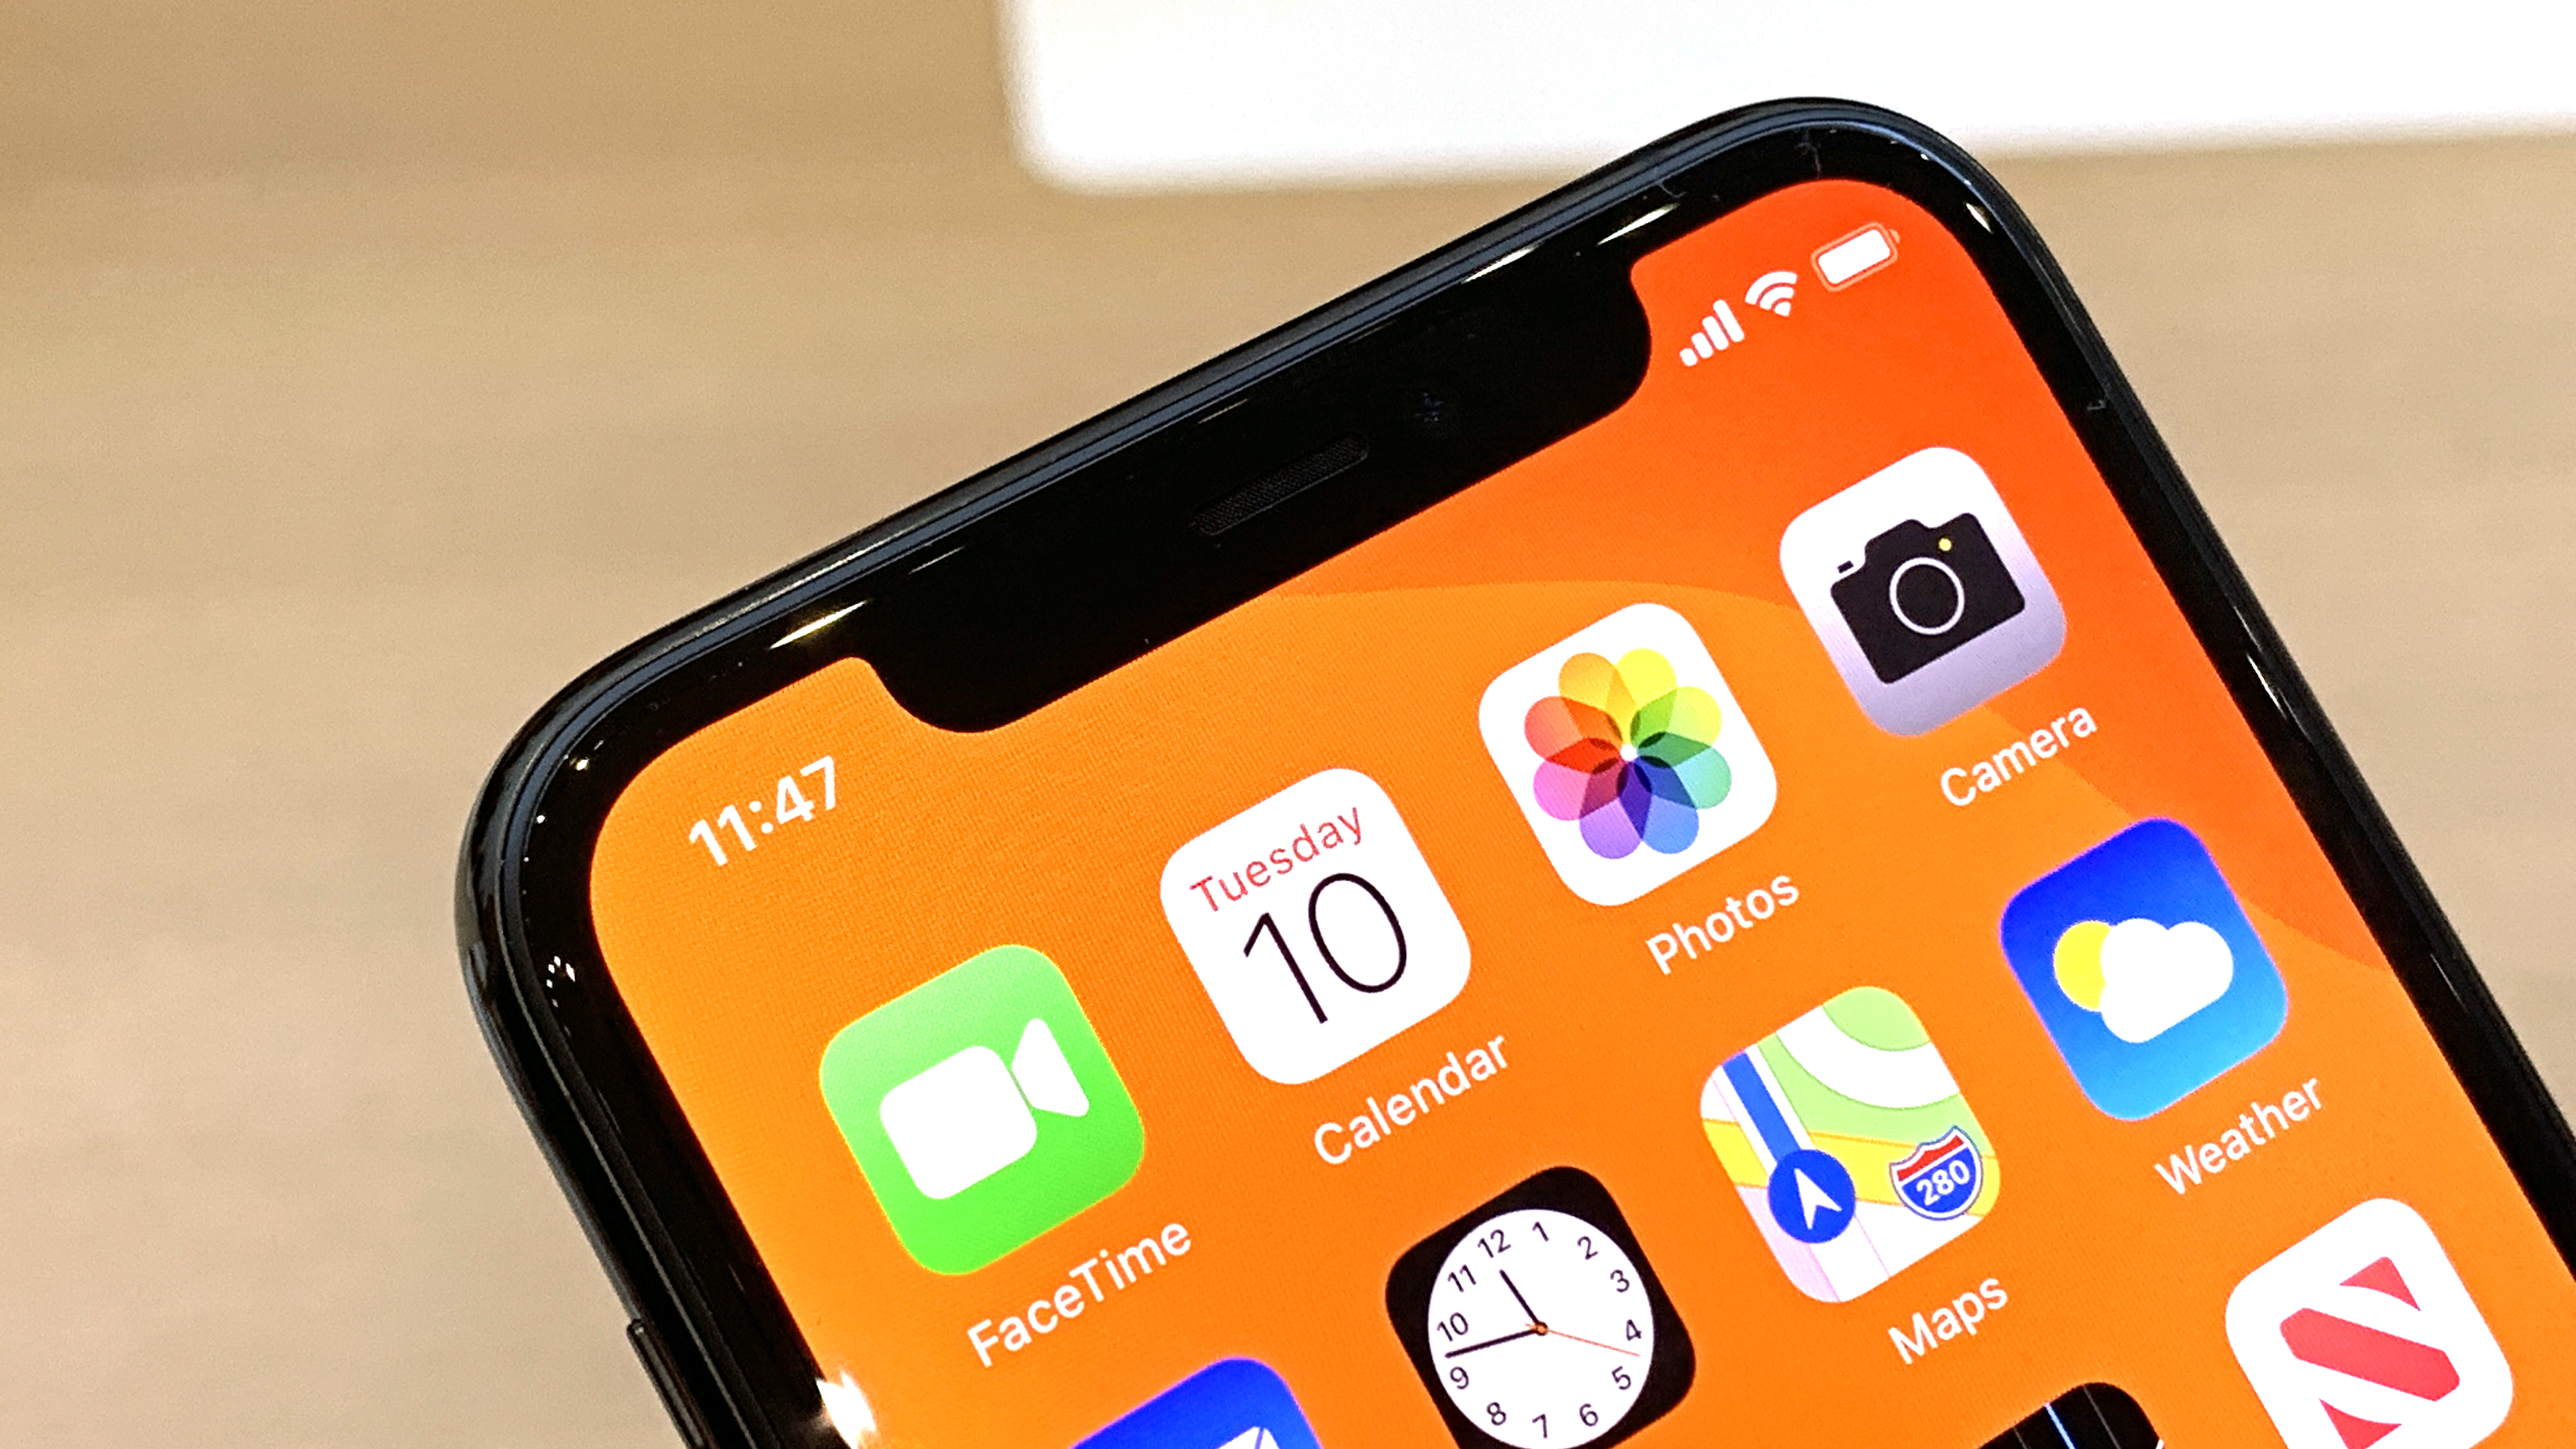 6 things you may have missed during the iPhone 11 and iPhone